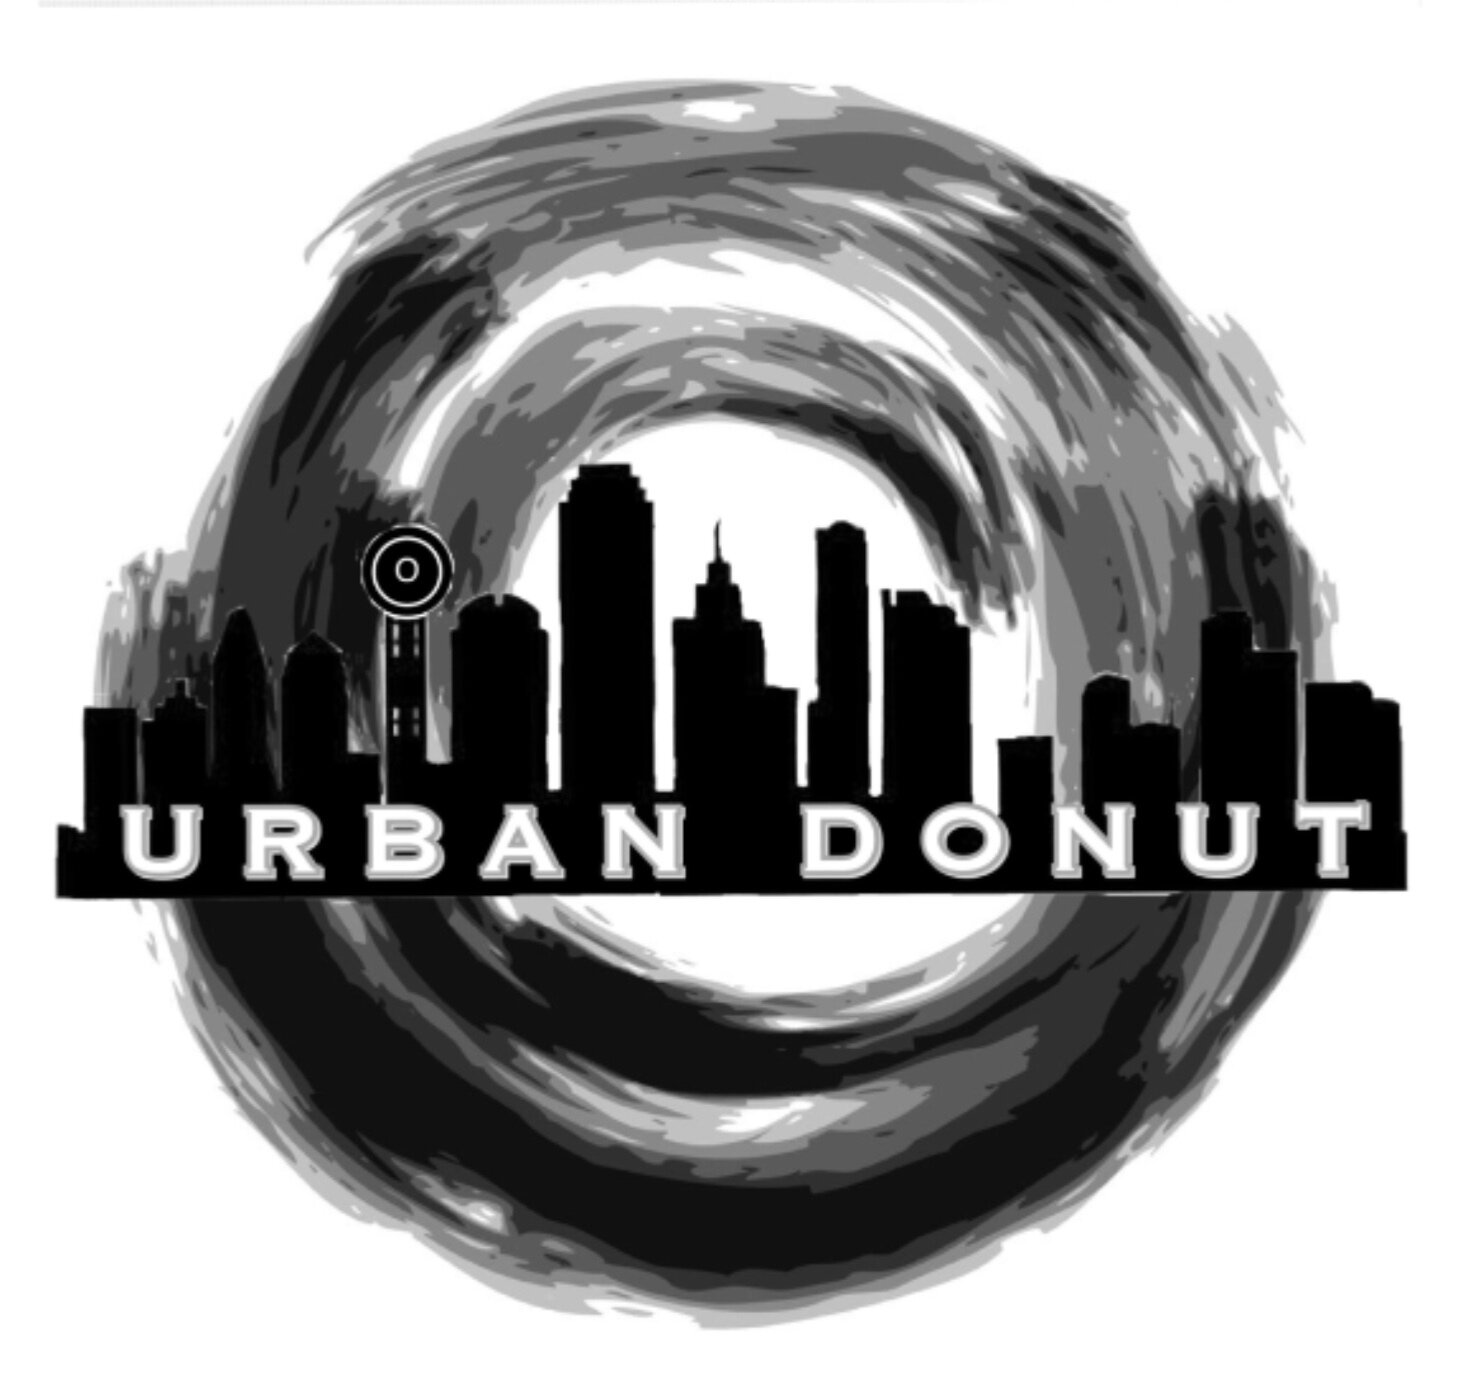 Urban Donut Dallas